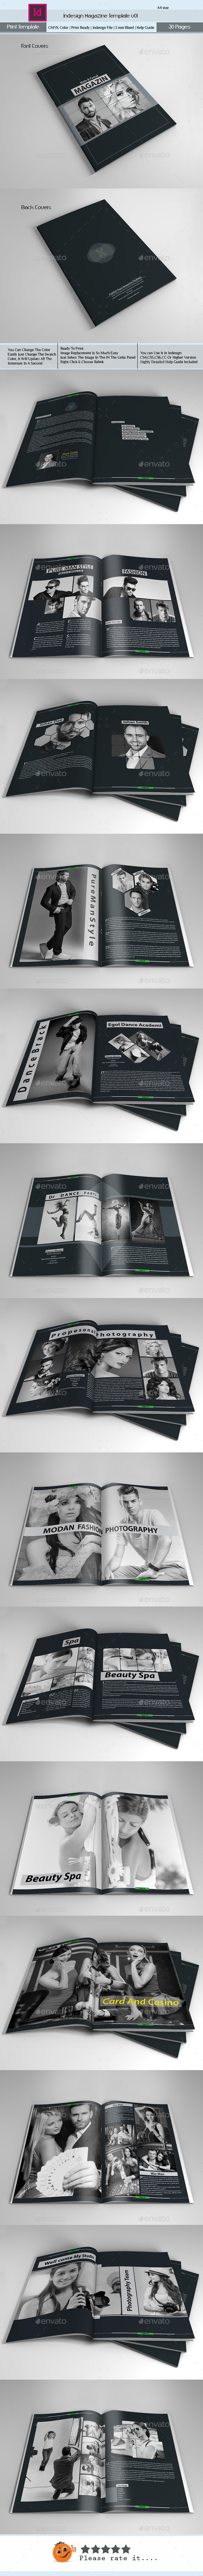 Indesign Magazine Template V01  - Magazines Print Templates